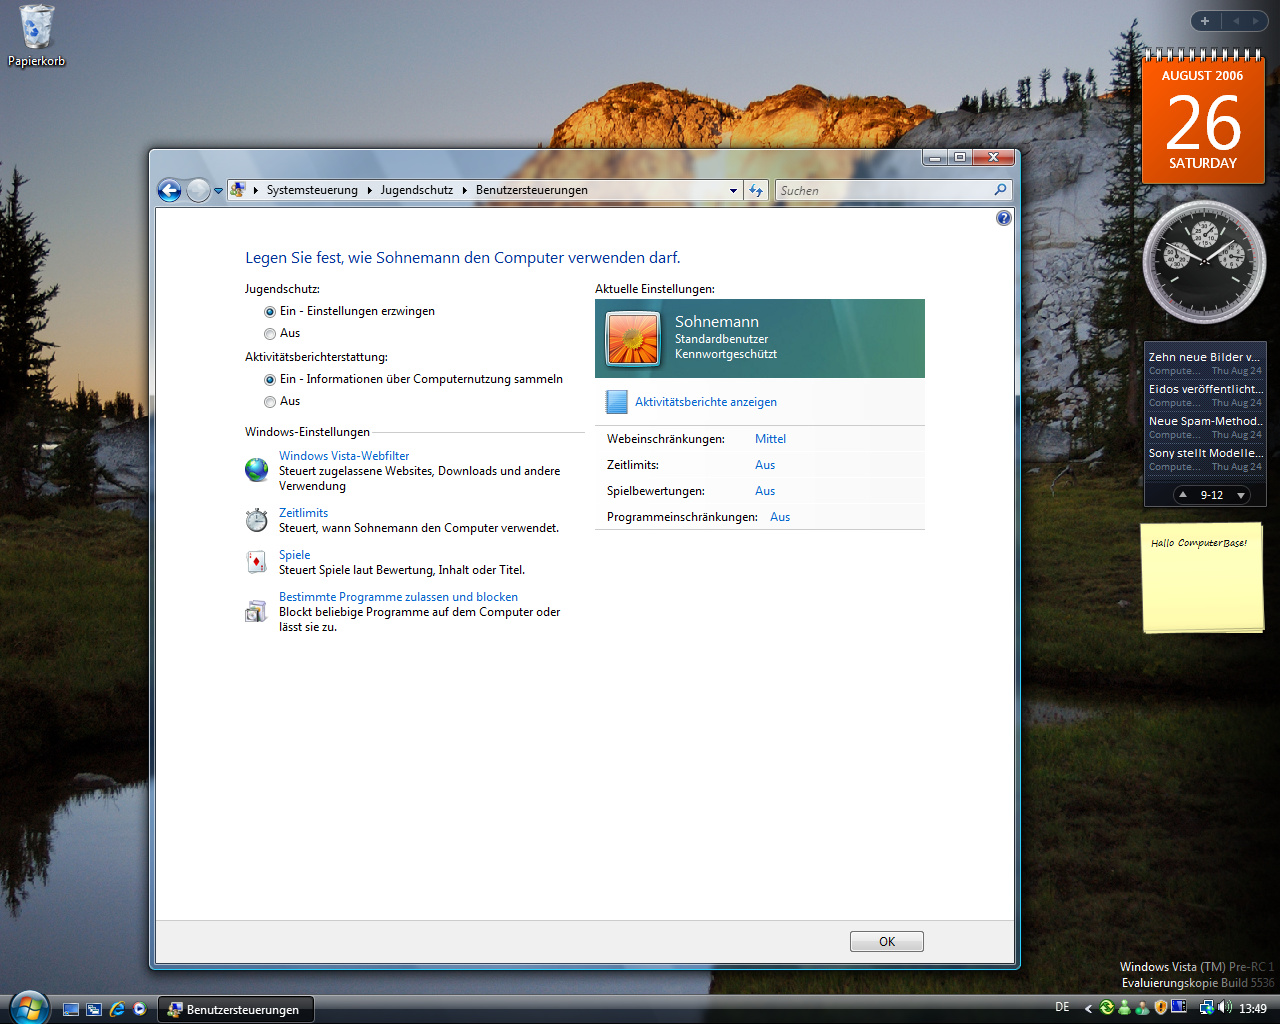 Windows Vista Build 5536 - Jugendschutz